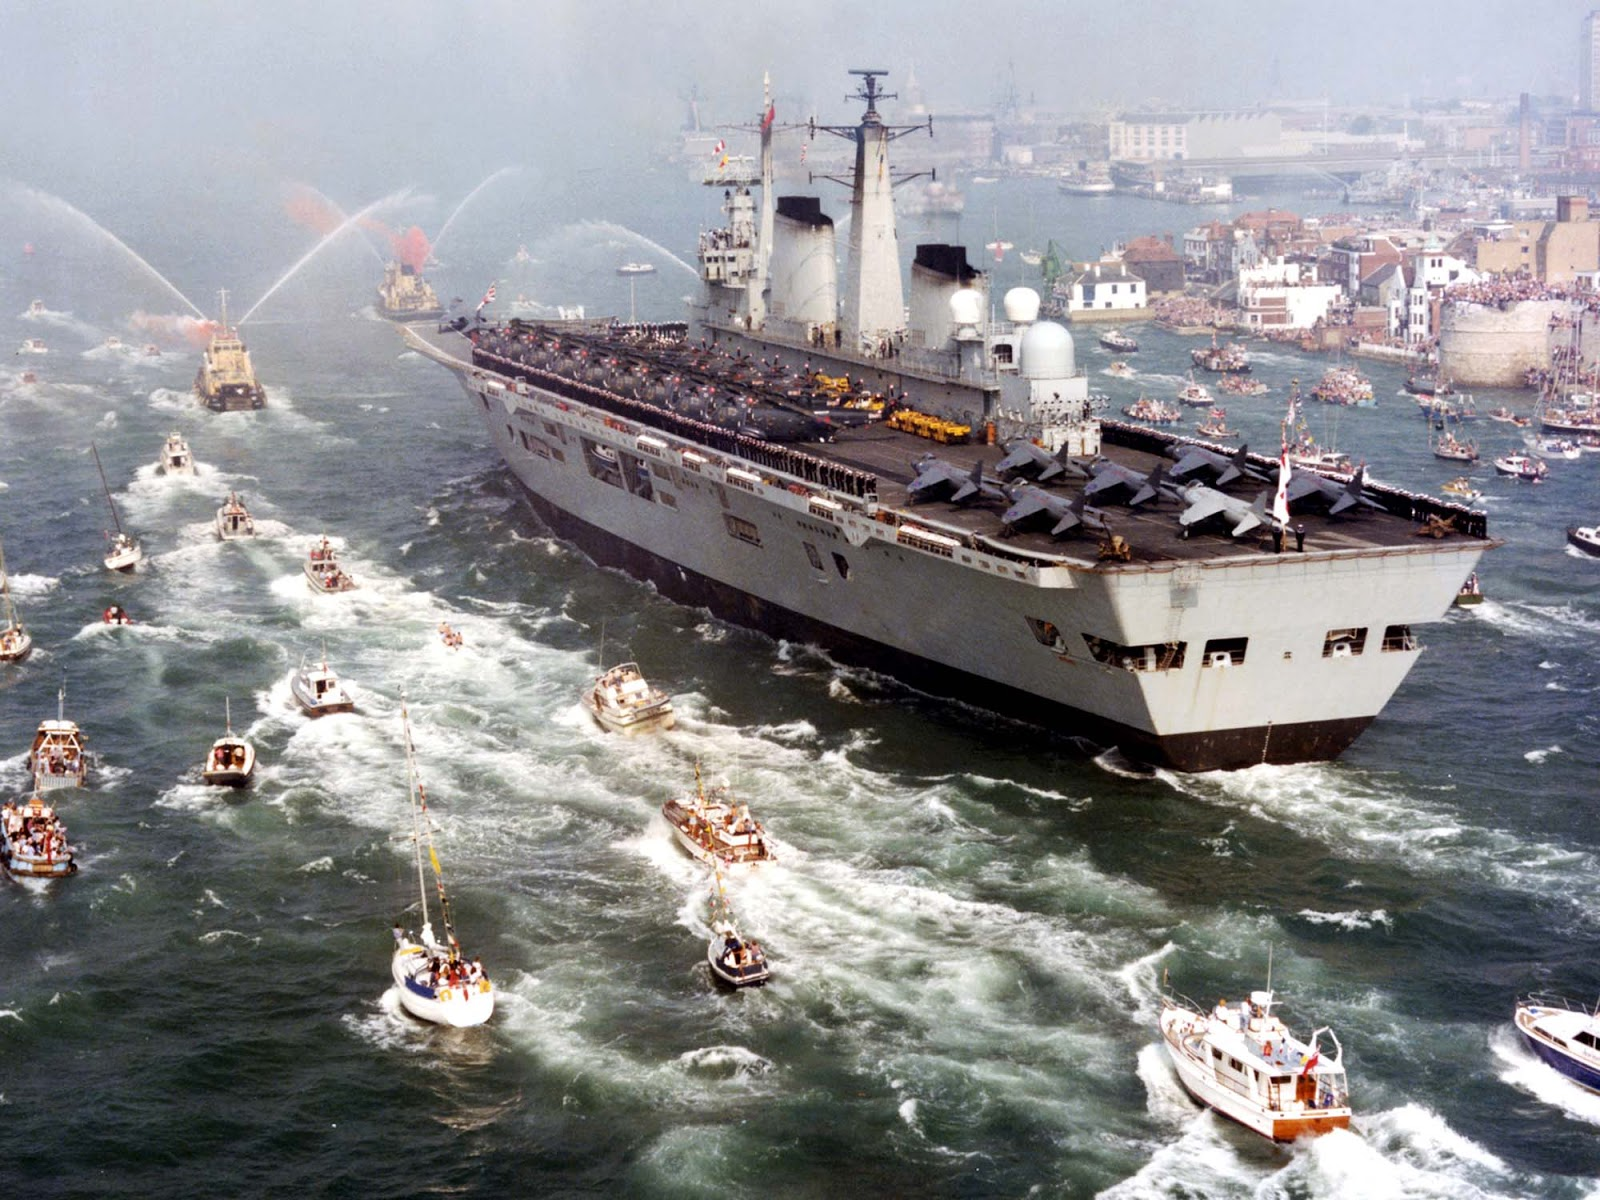 HMS Invincible returns to massive celebrations following the Falklandís Conflict in 1982. Lined up on deck are Sea King helicopters from 820 Naval Air Squadron and Sea Harrier FRS1 aircraft from 800 Naval Air Squadron.